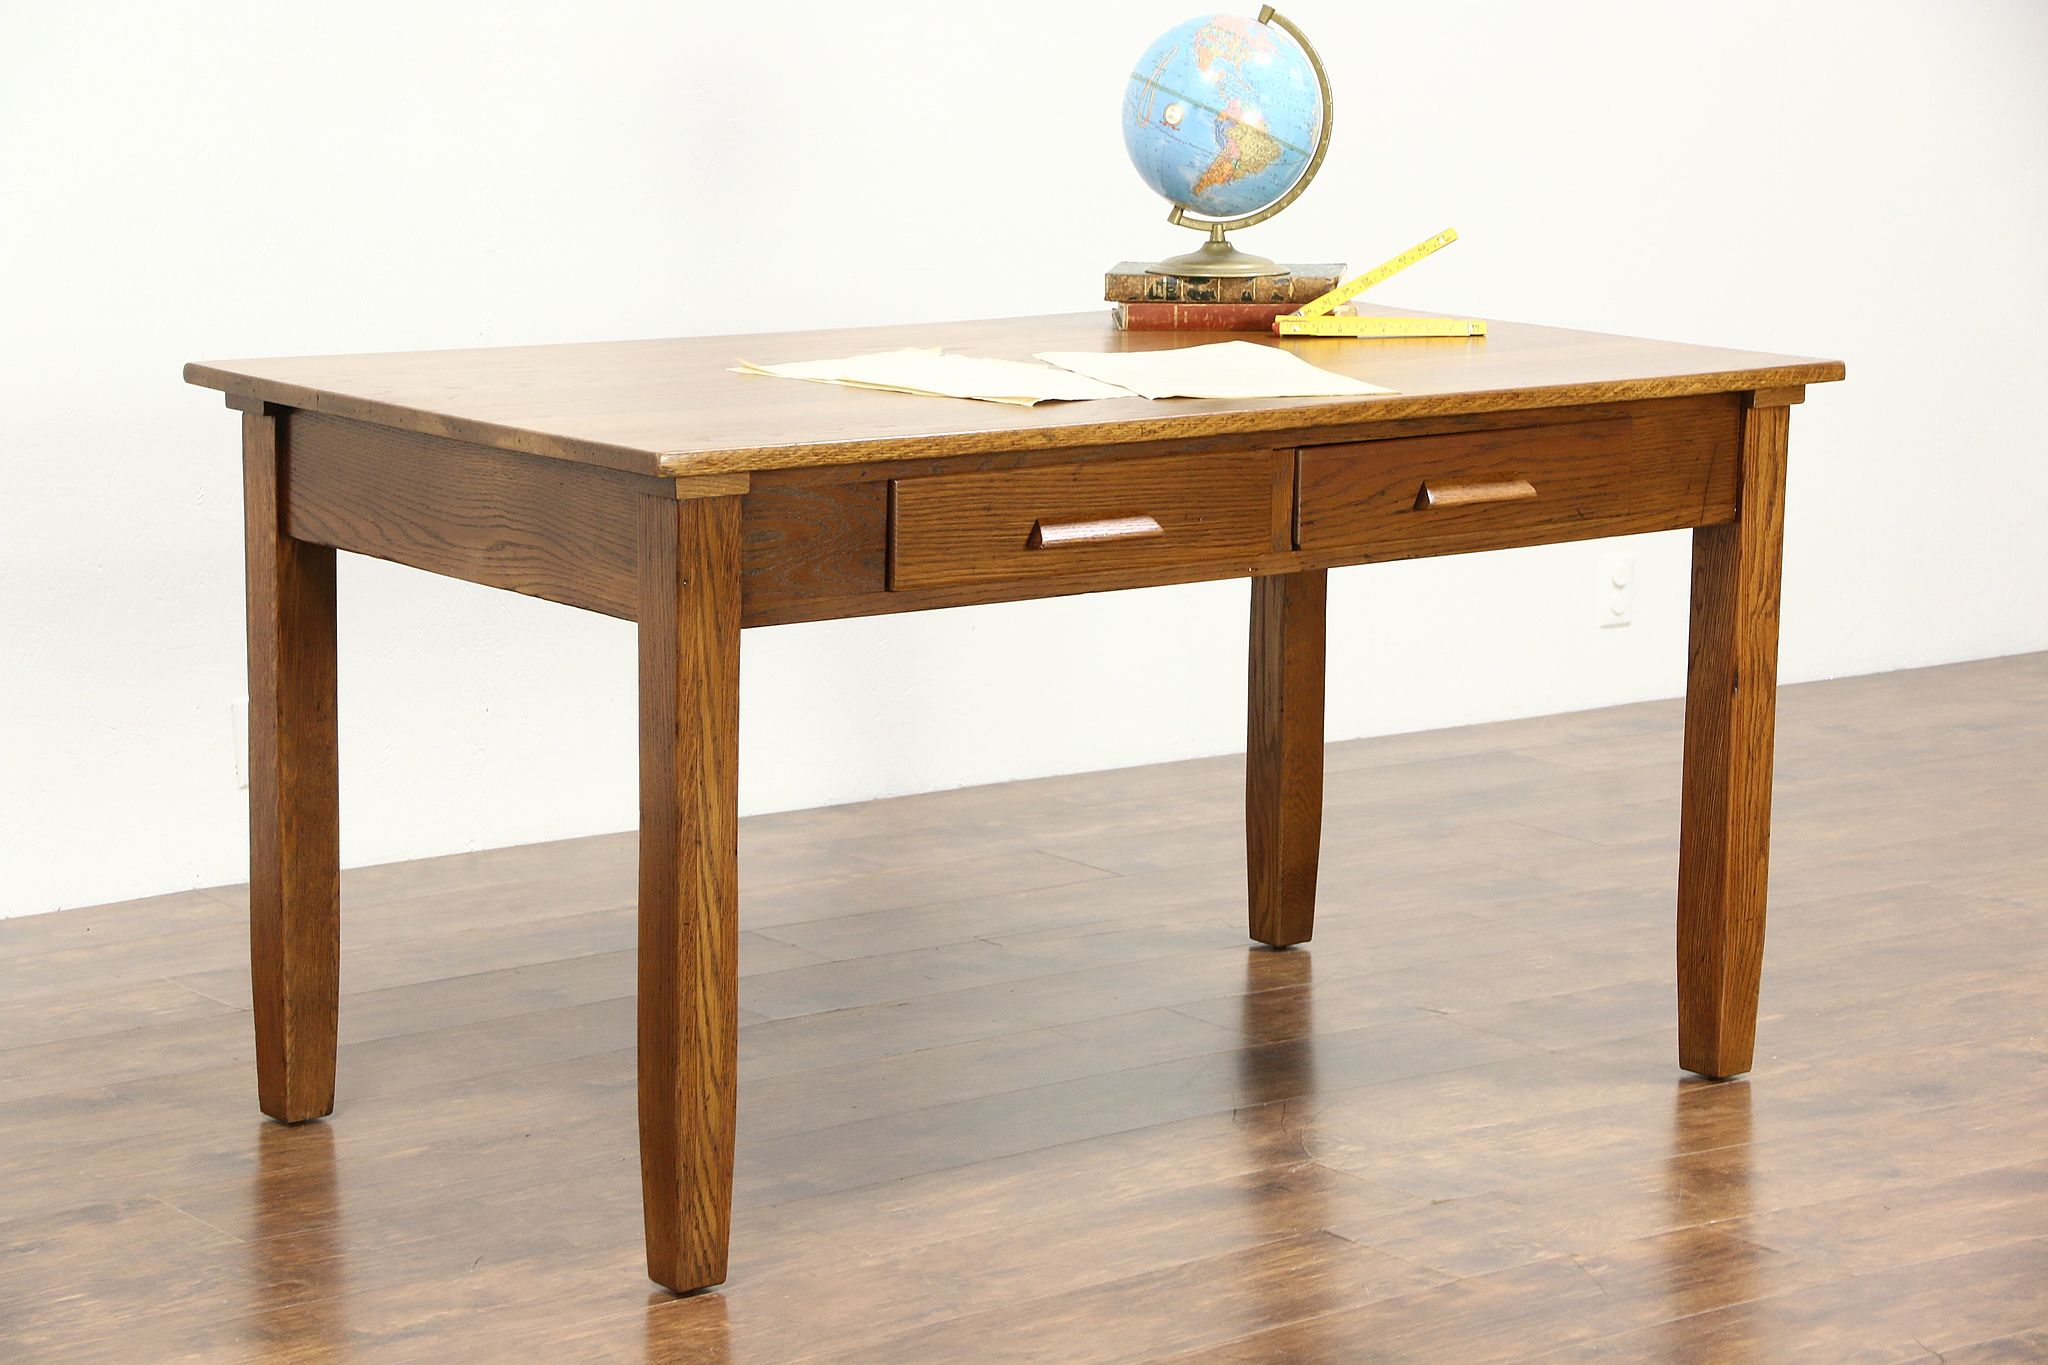 Oak 1915 Antique 5 Craftsman Library Table or Writing Desk 2